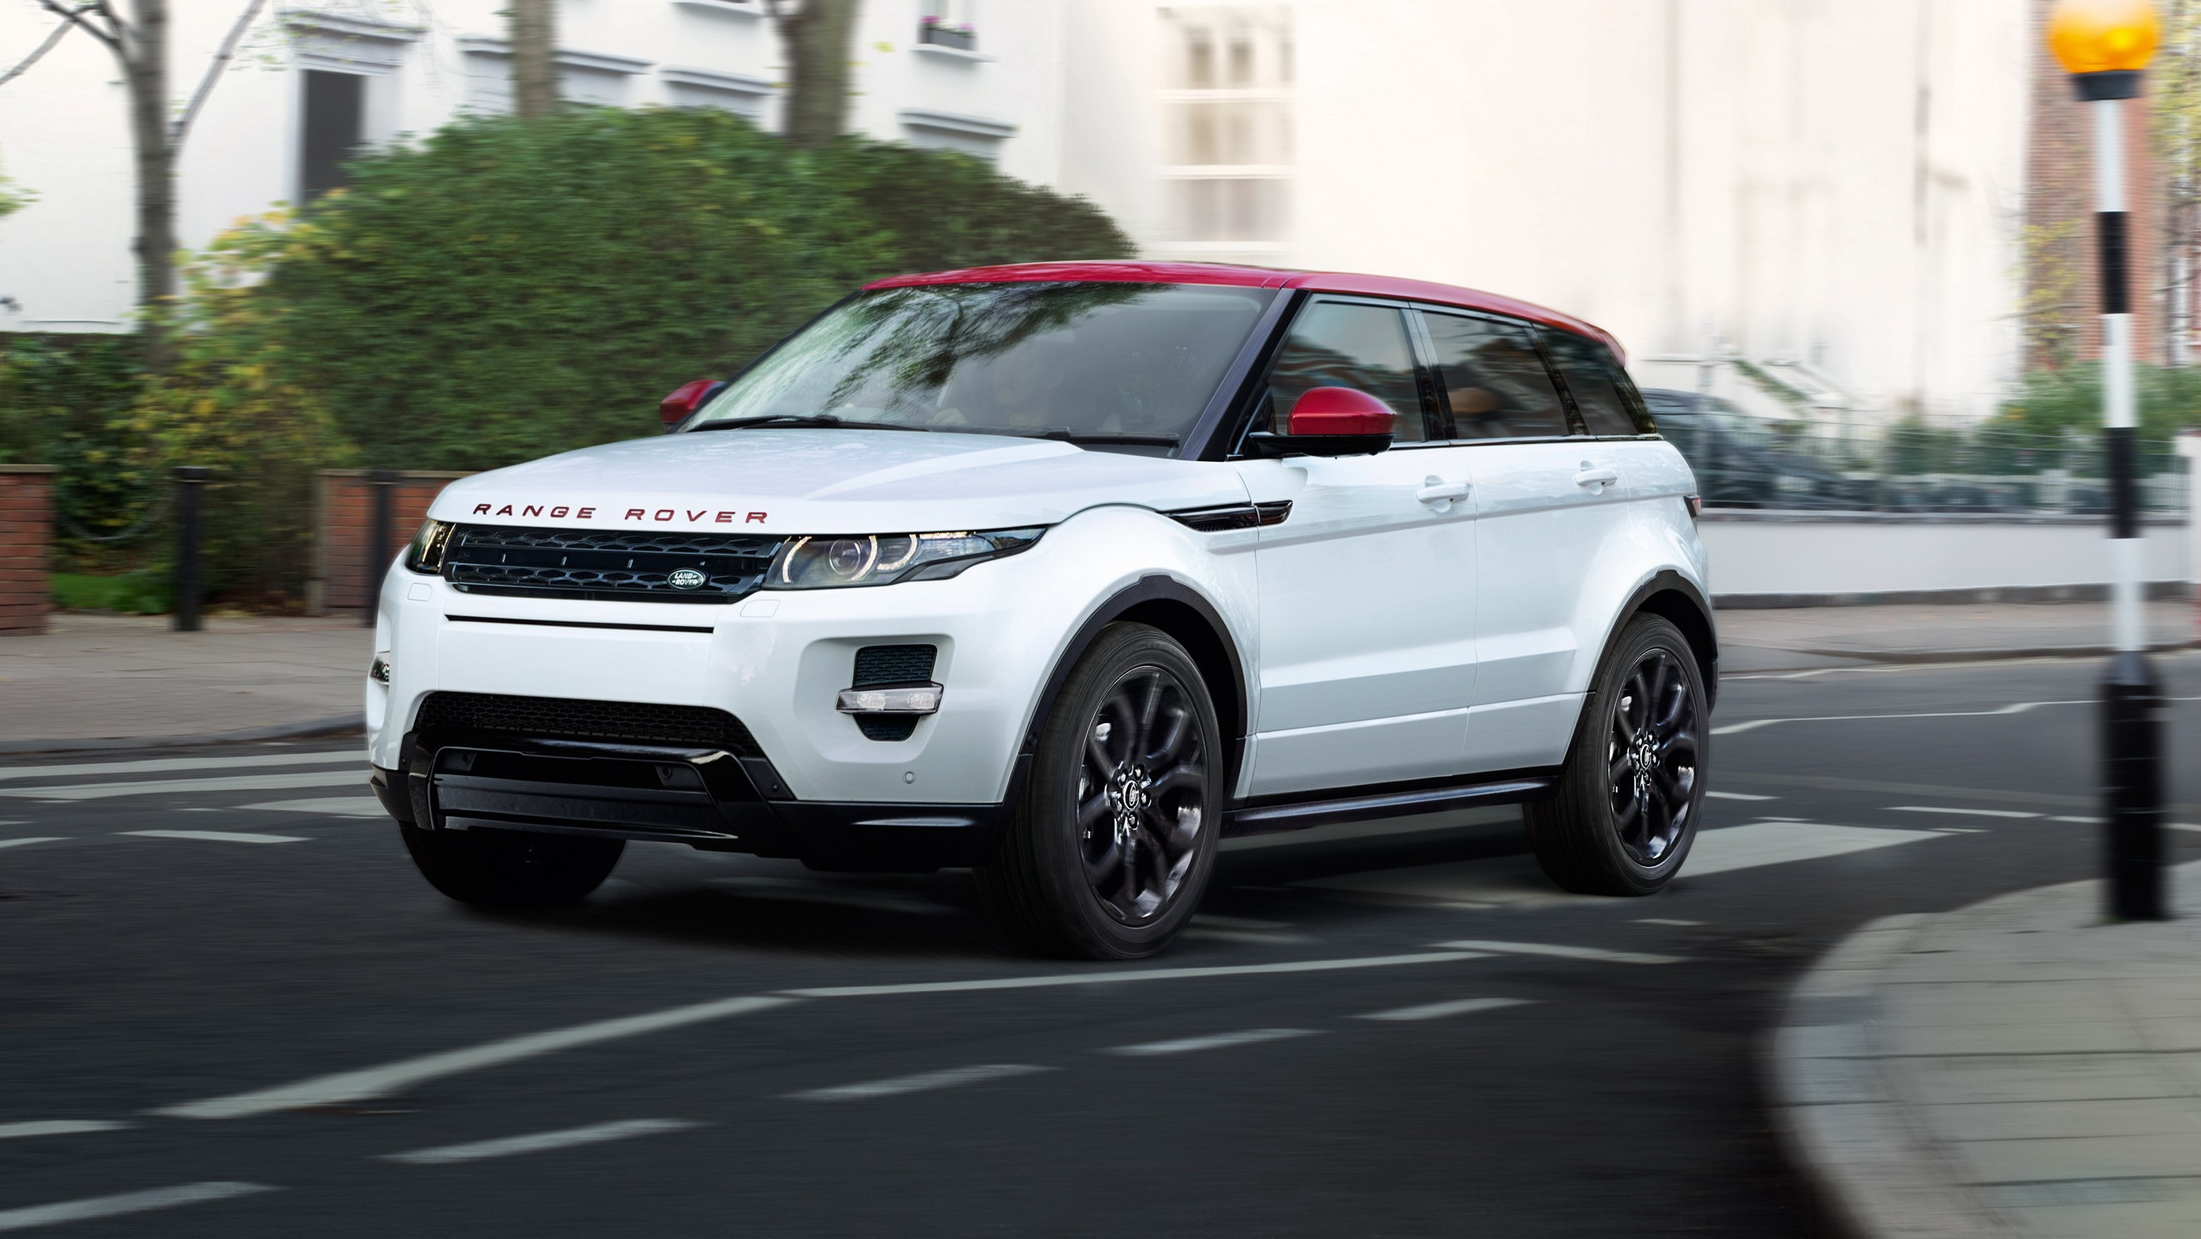 2015 Land Rover Range Rover Evoque NW8 Review Gallery Top Speed